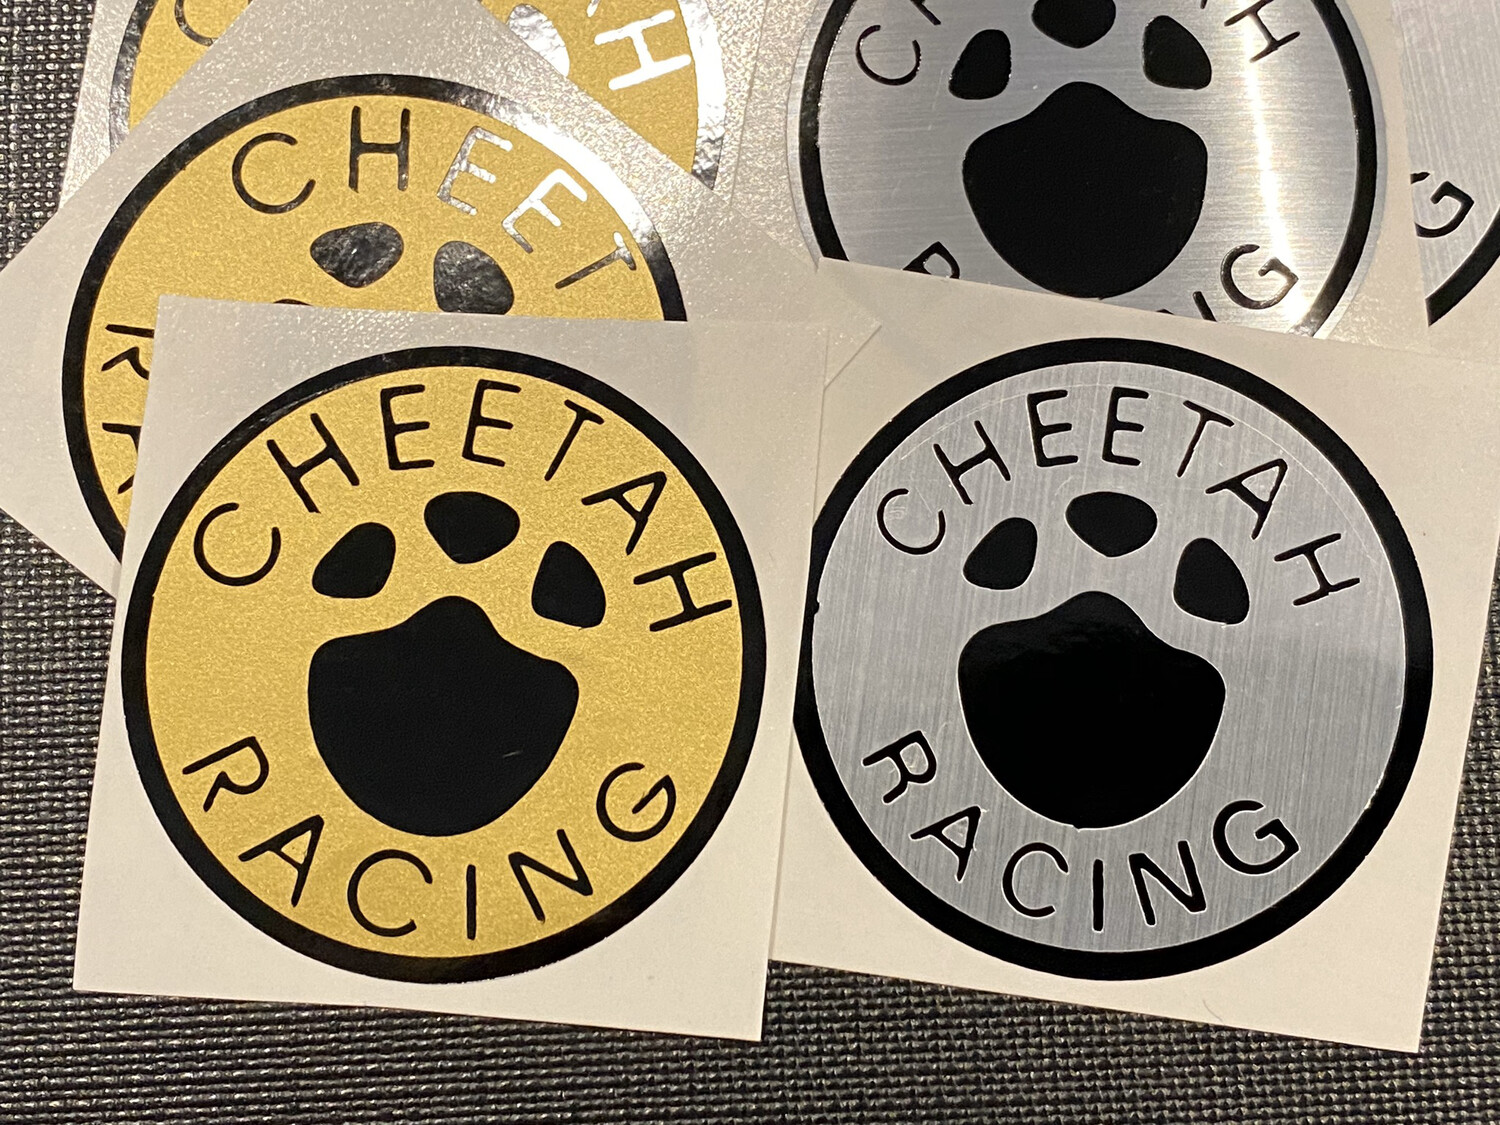 Cheetah Racing Badge Sticker